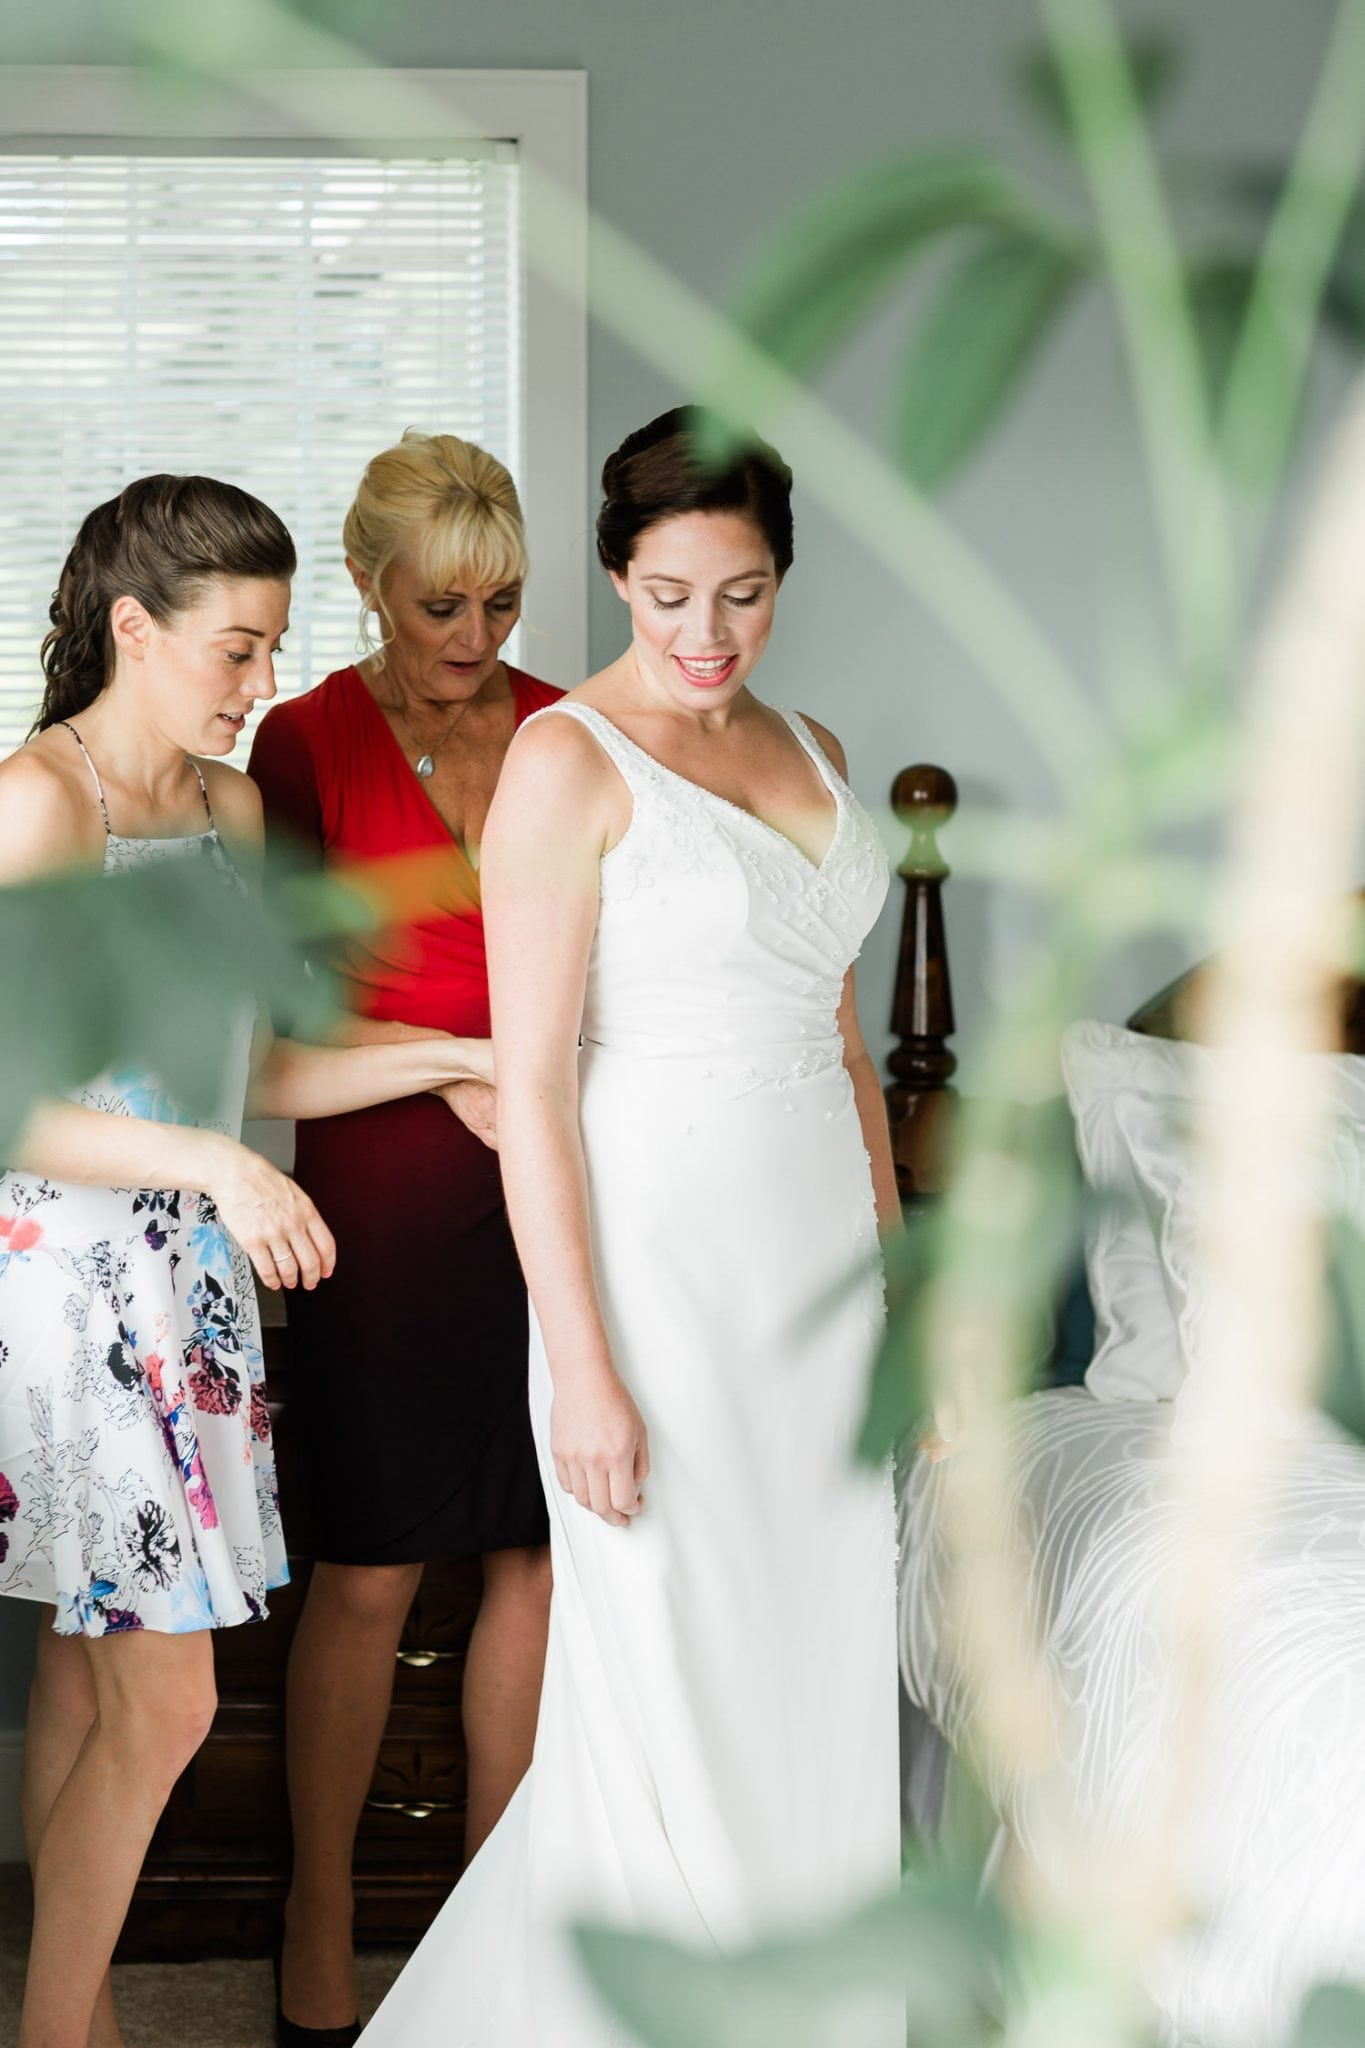 Brides mate helping with a dress | Vancouver wedding photographer